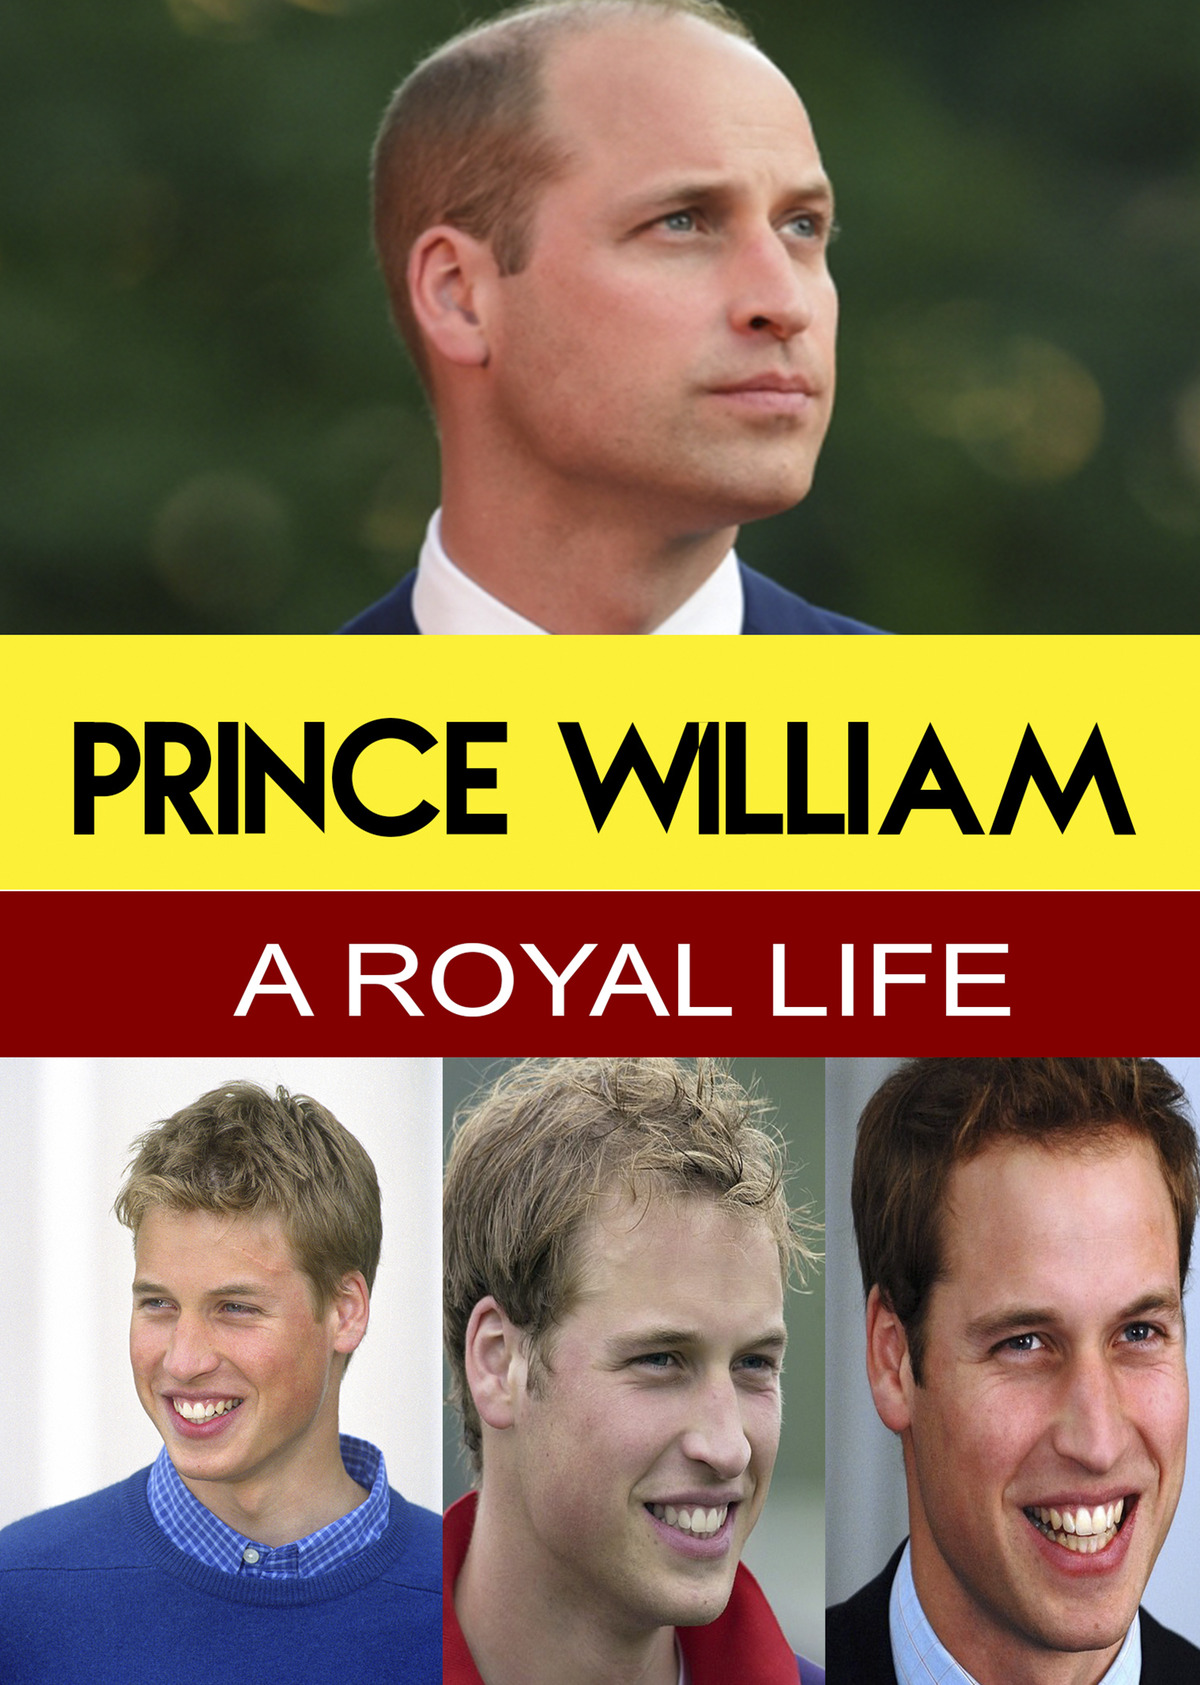 L7815 - Prince William - A Royal Life